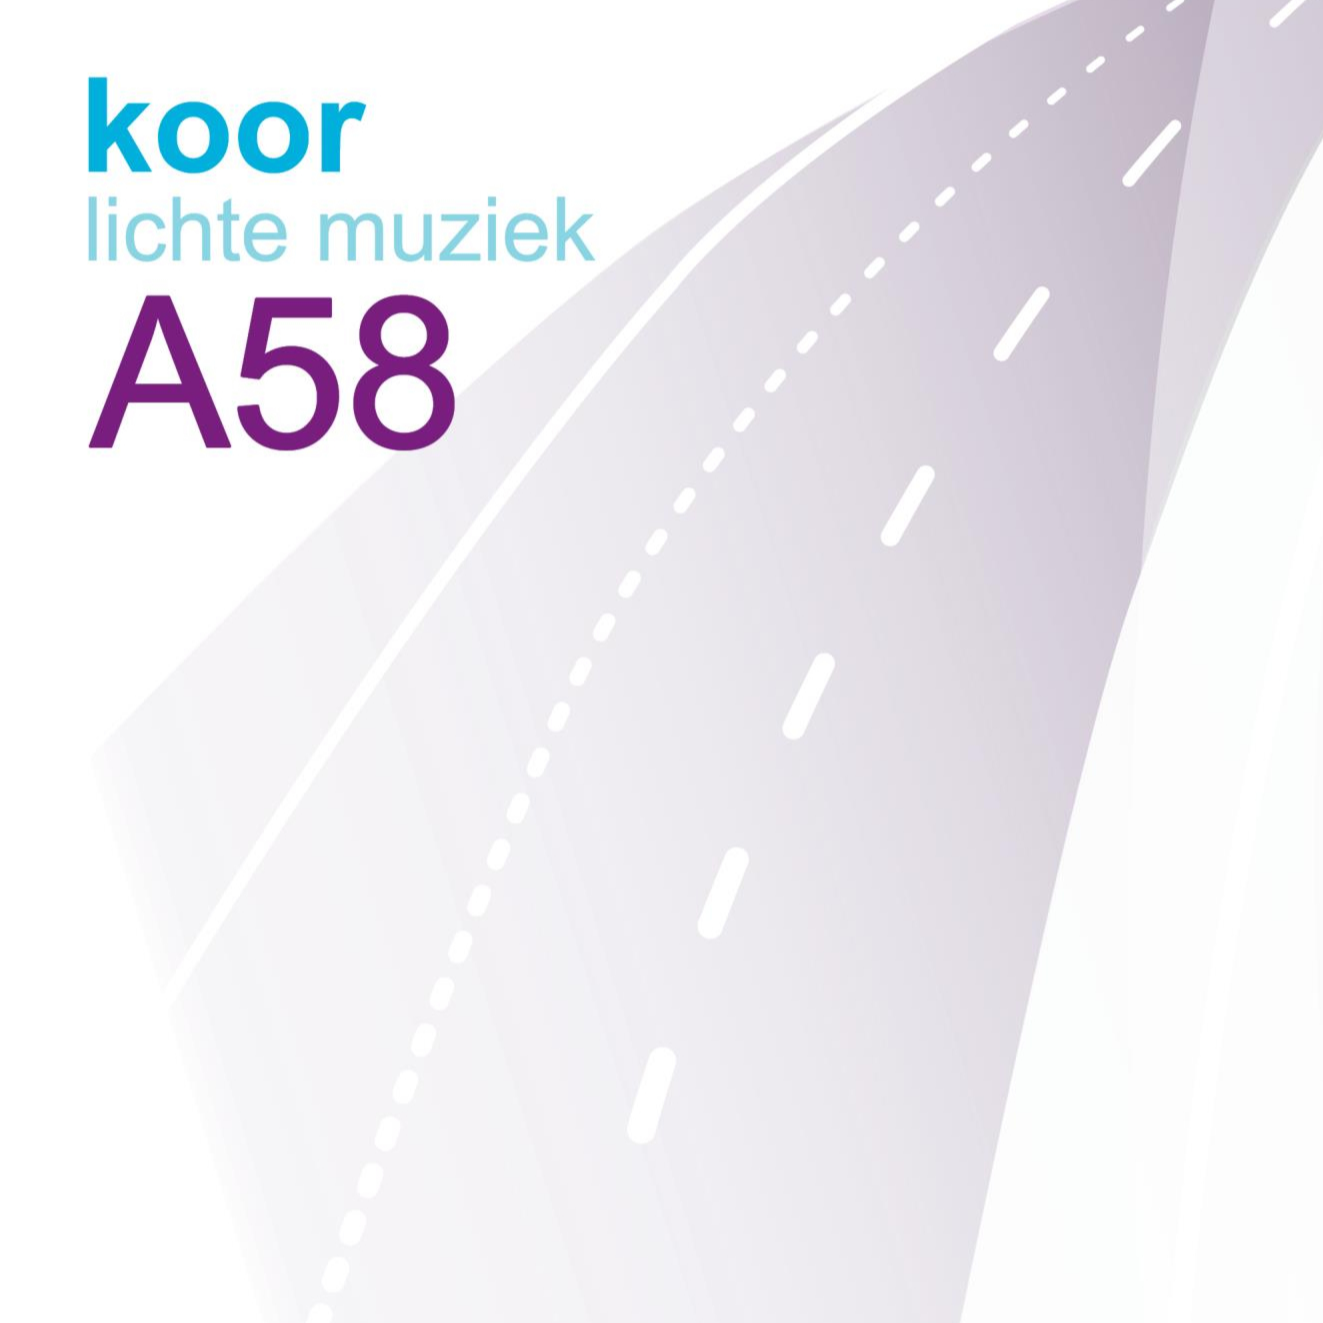 Stichting A58